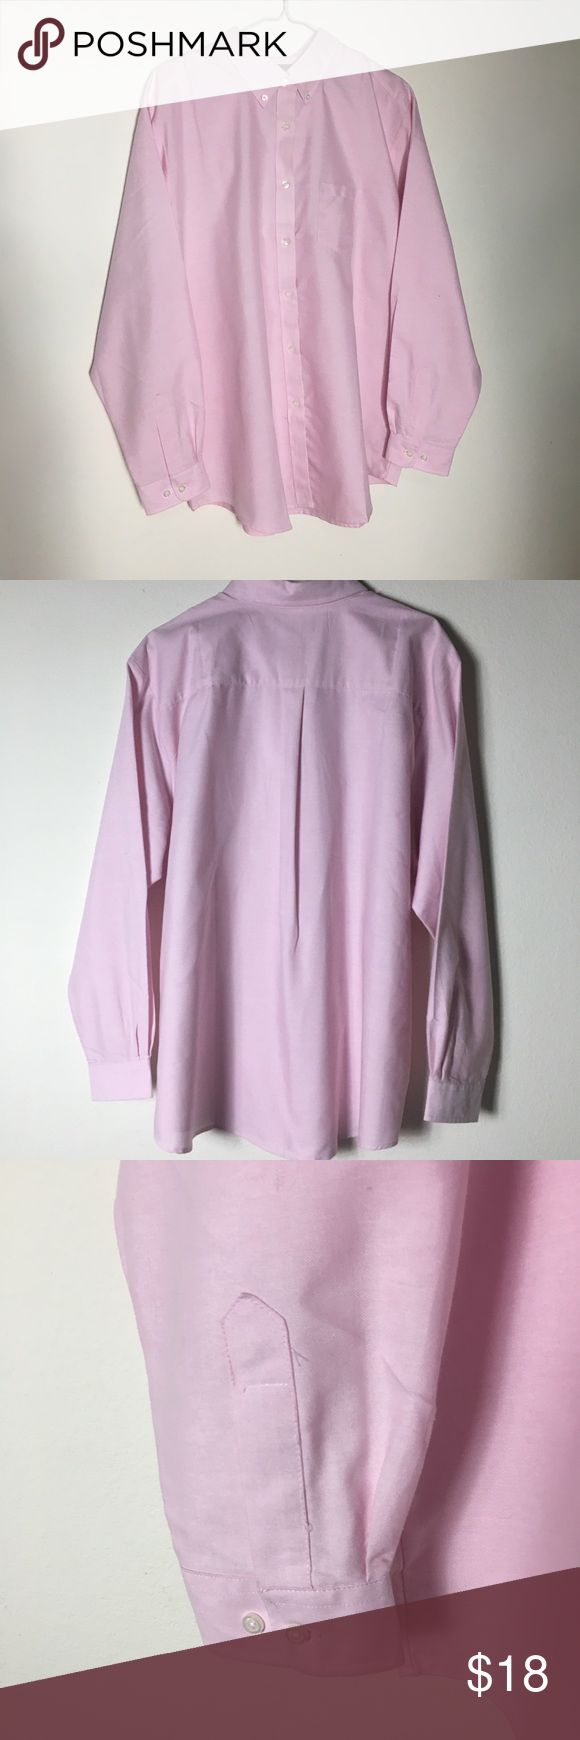 Ultra Club Pink Oxford XL Women Button Down Shirt. Brand: Ultra Club Size Type: Regular Size (Women's): XL Style: Button Down Shirt Material: 60% Cotton / 40% Polyester Color: Light Pink Occasion: Casual Pattern: Solid Sleeve Style: Long Sleeve Neckline: Button-Down Country: Bangladesh Length: 28.5 inches Width: 25.5 inches Wrinkle Free Ultra Club Tops Button Down Shirts